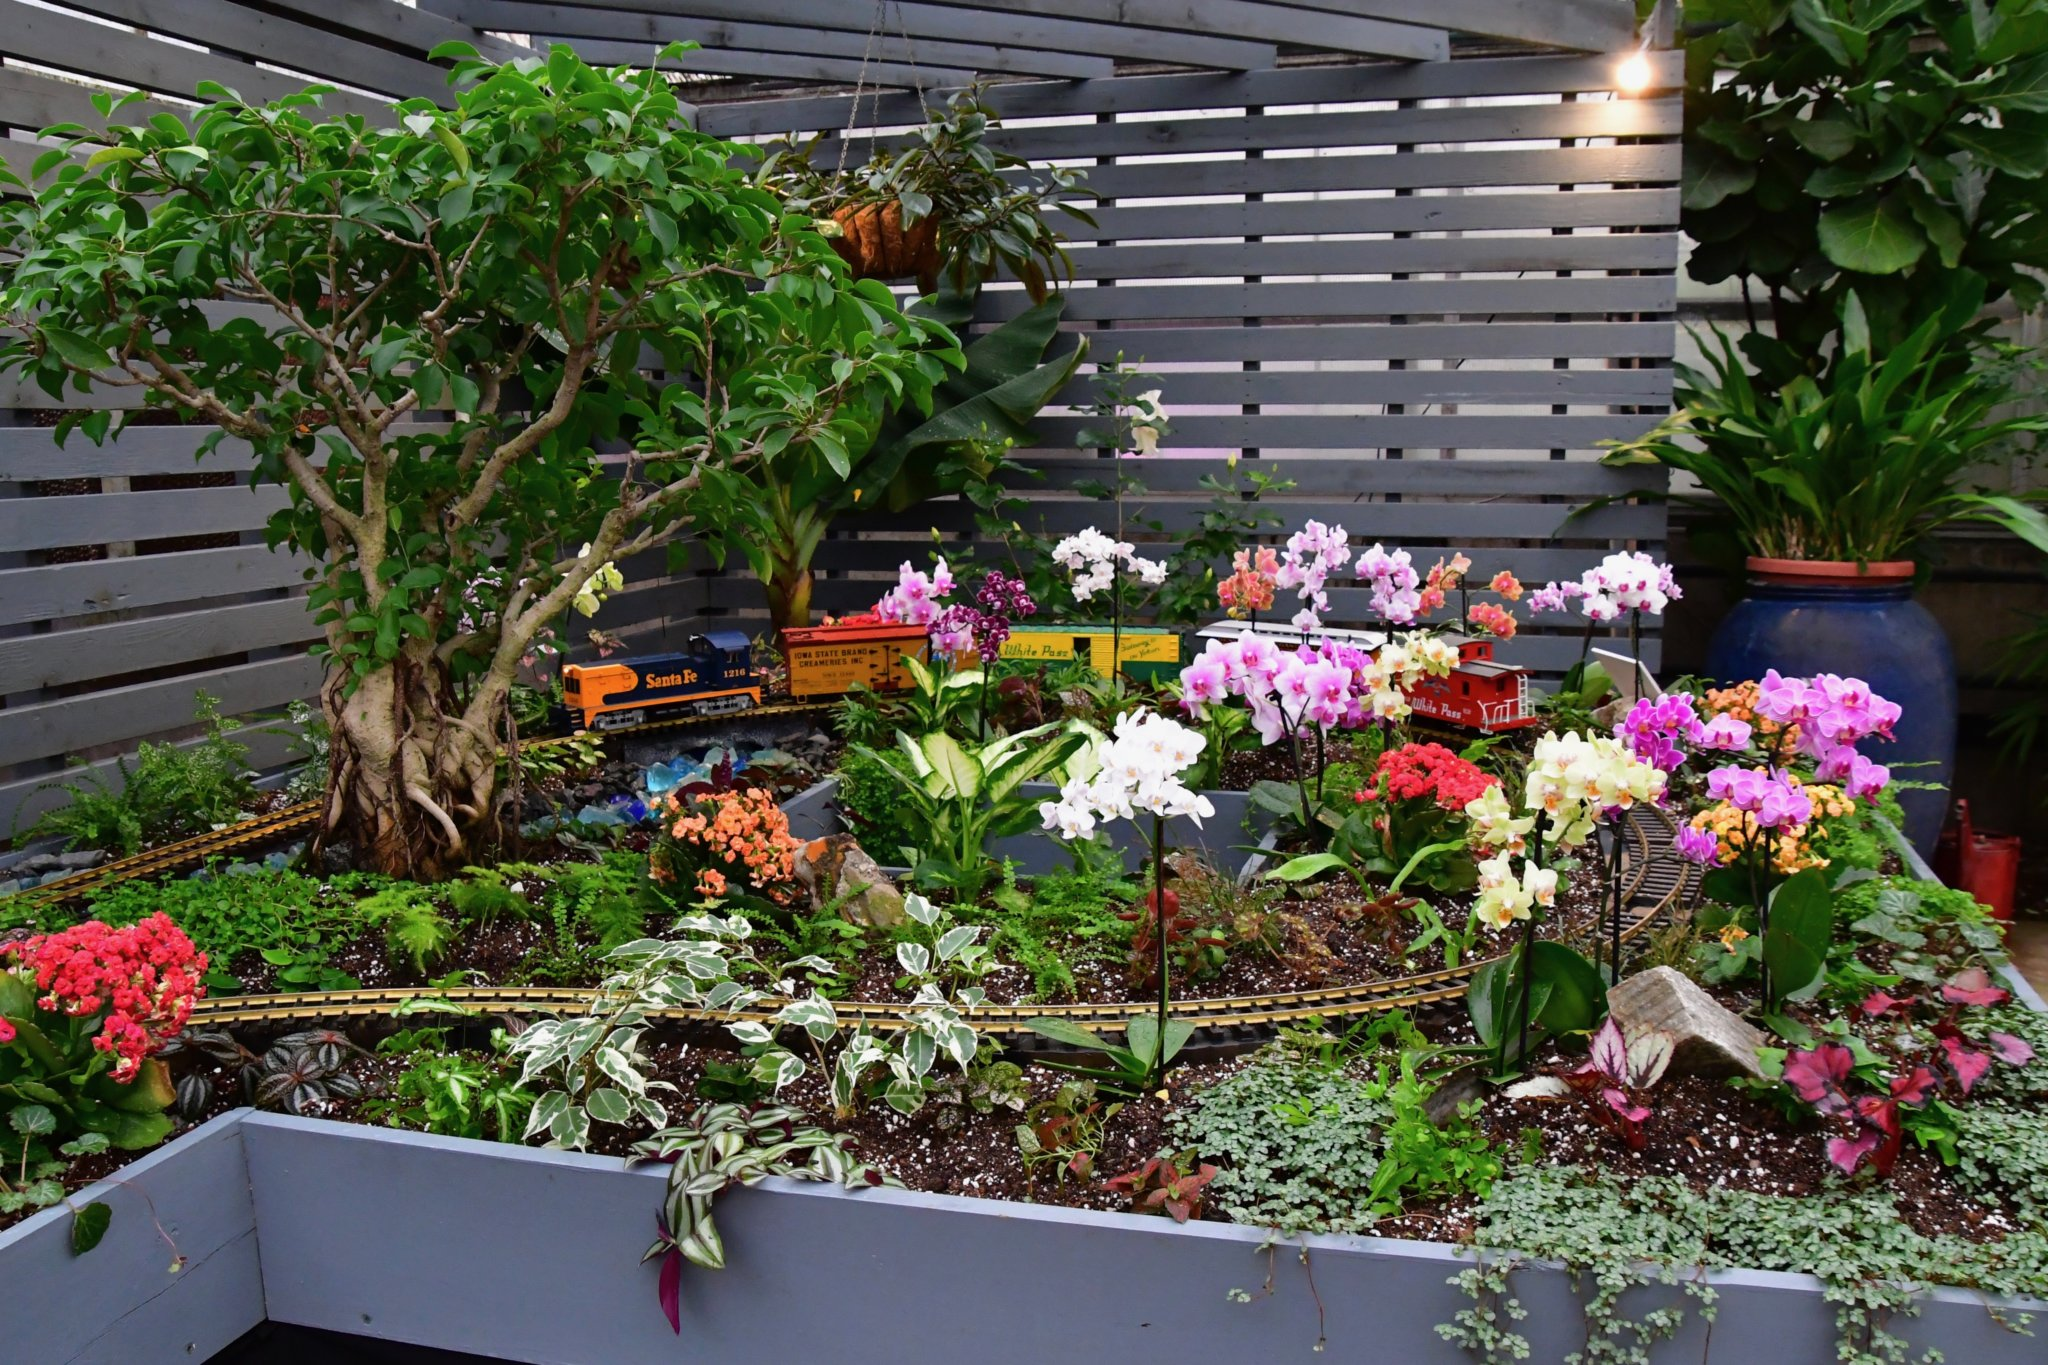 """The """"tropical"""" side of the holiday train display features vibrantly colored orchid blooms and varied greenery."""